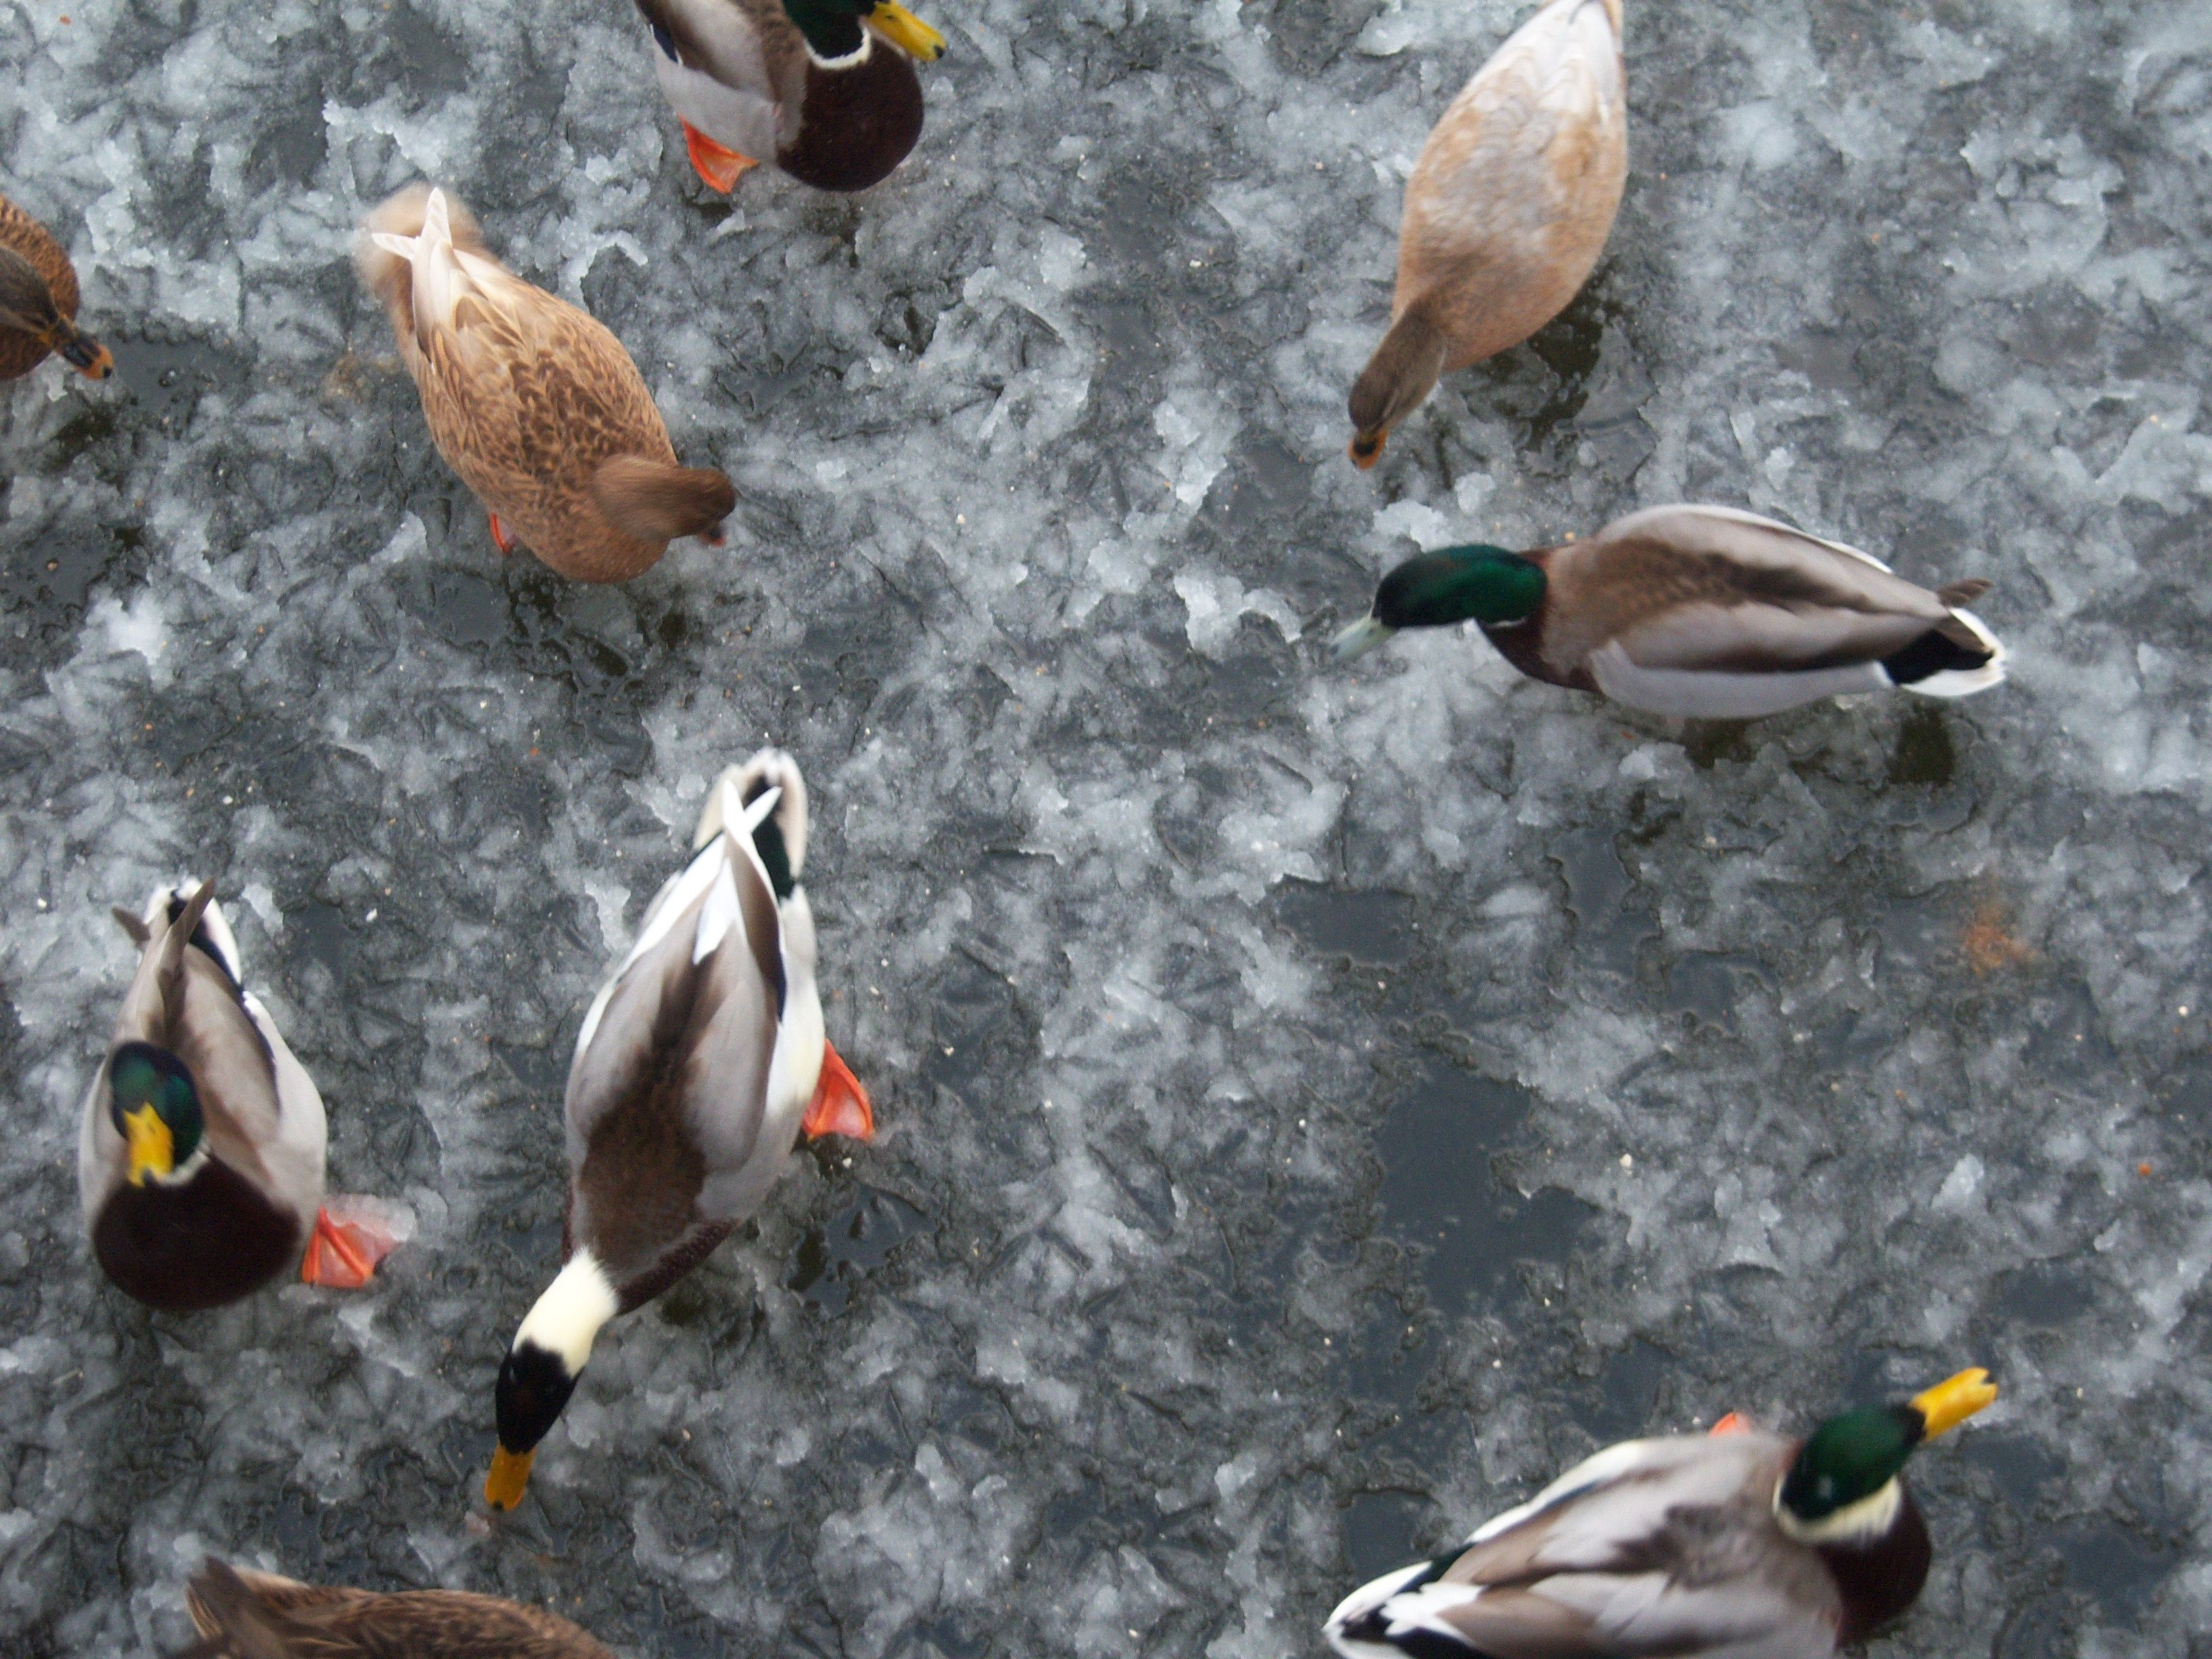 #Photograpy #Duck #Ice #Winter